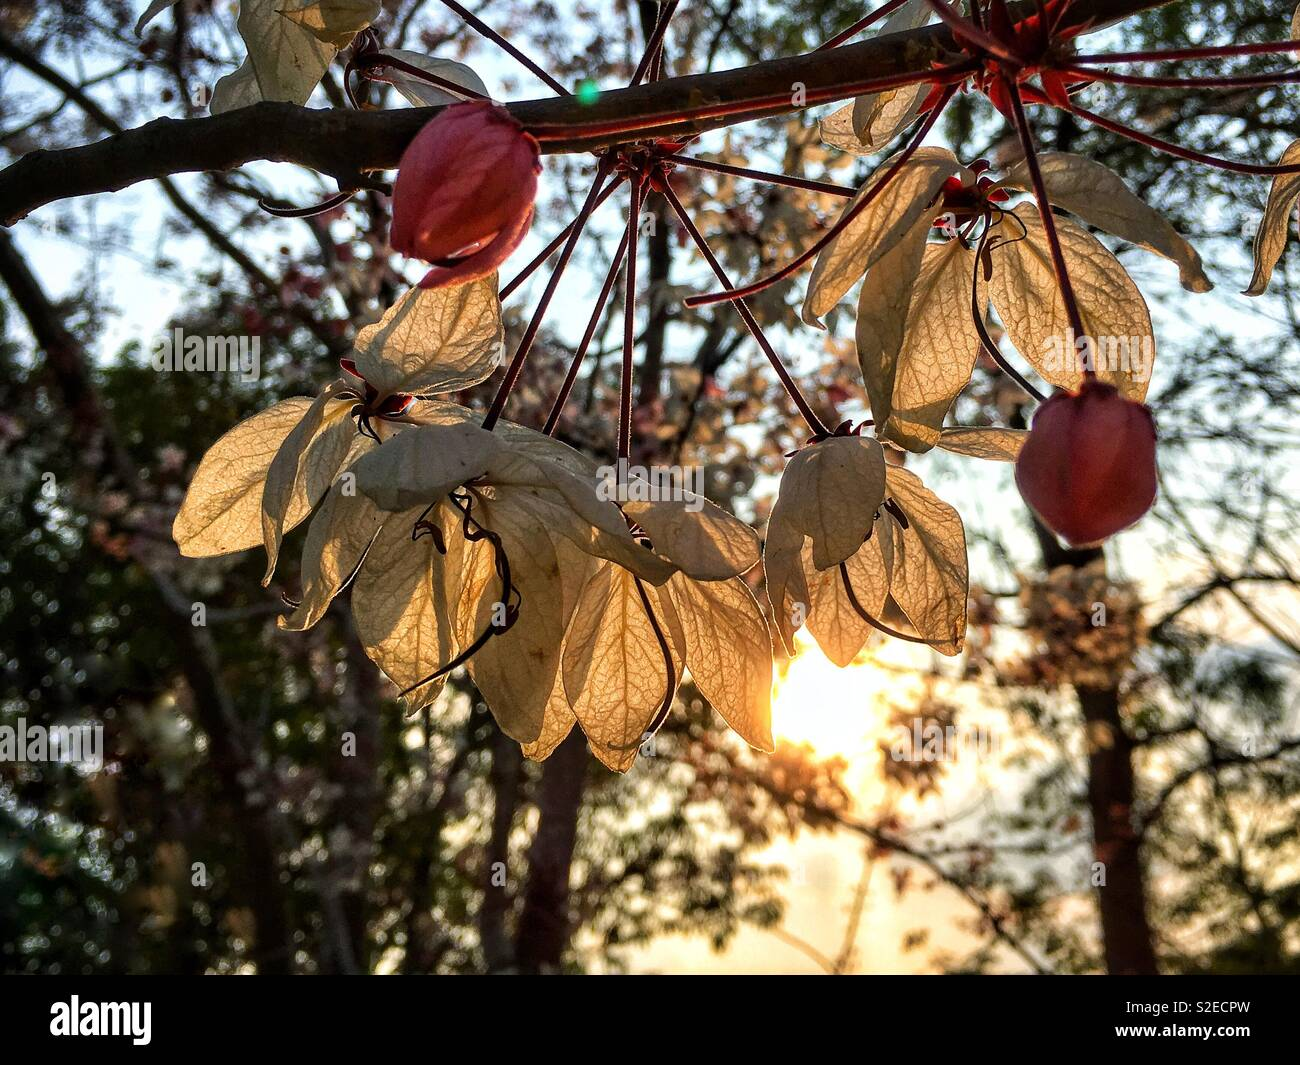 Tender sunrays are going through the transparent leaves of flowers - Stock Image